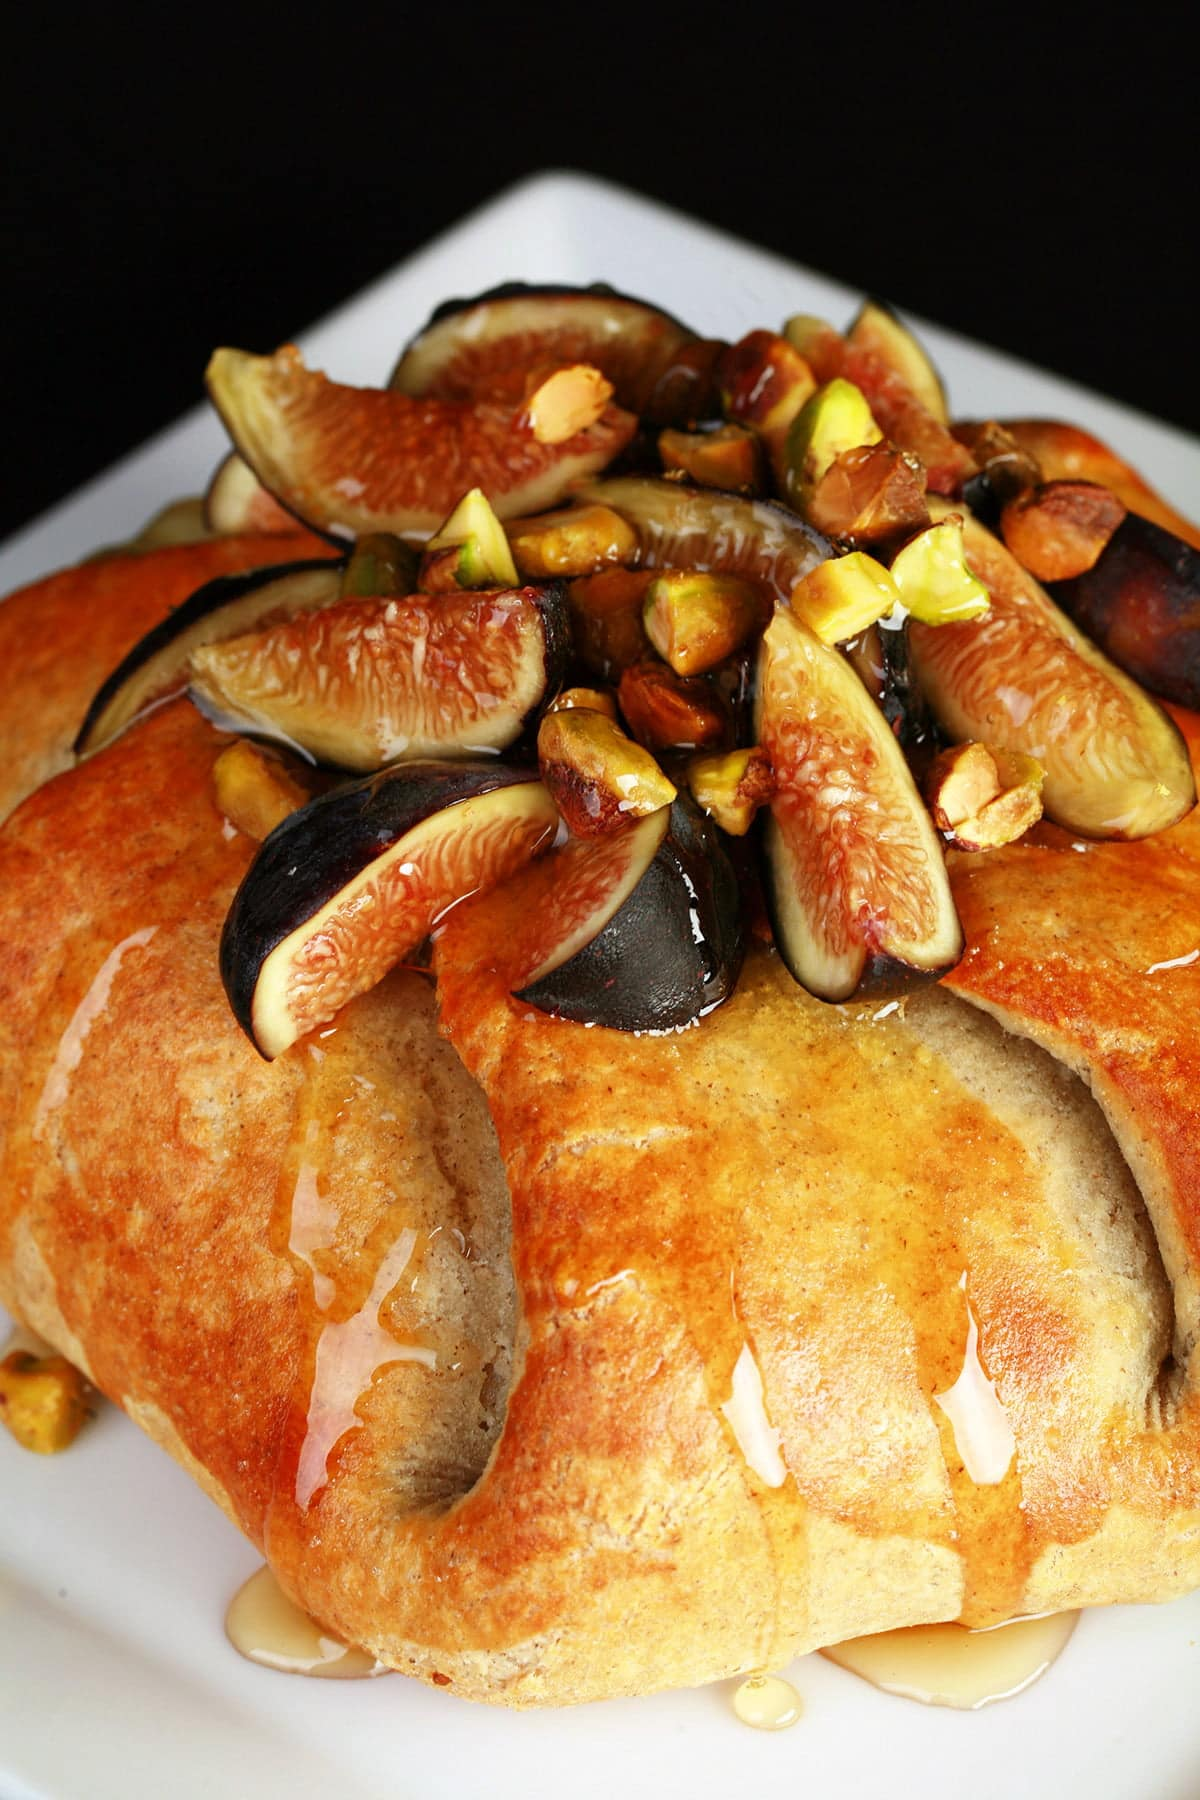 Sliced figs, pistachio, and honey top a round, gathered, golden brown pastry.